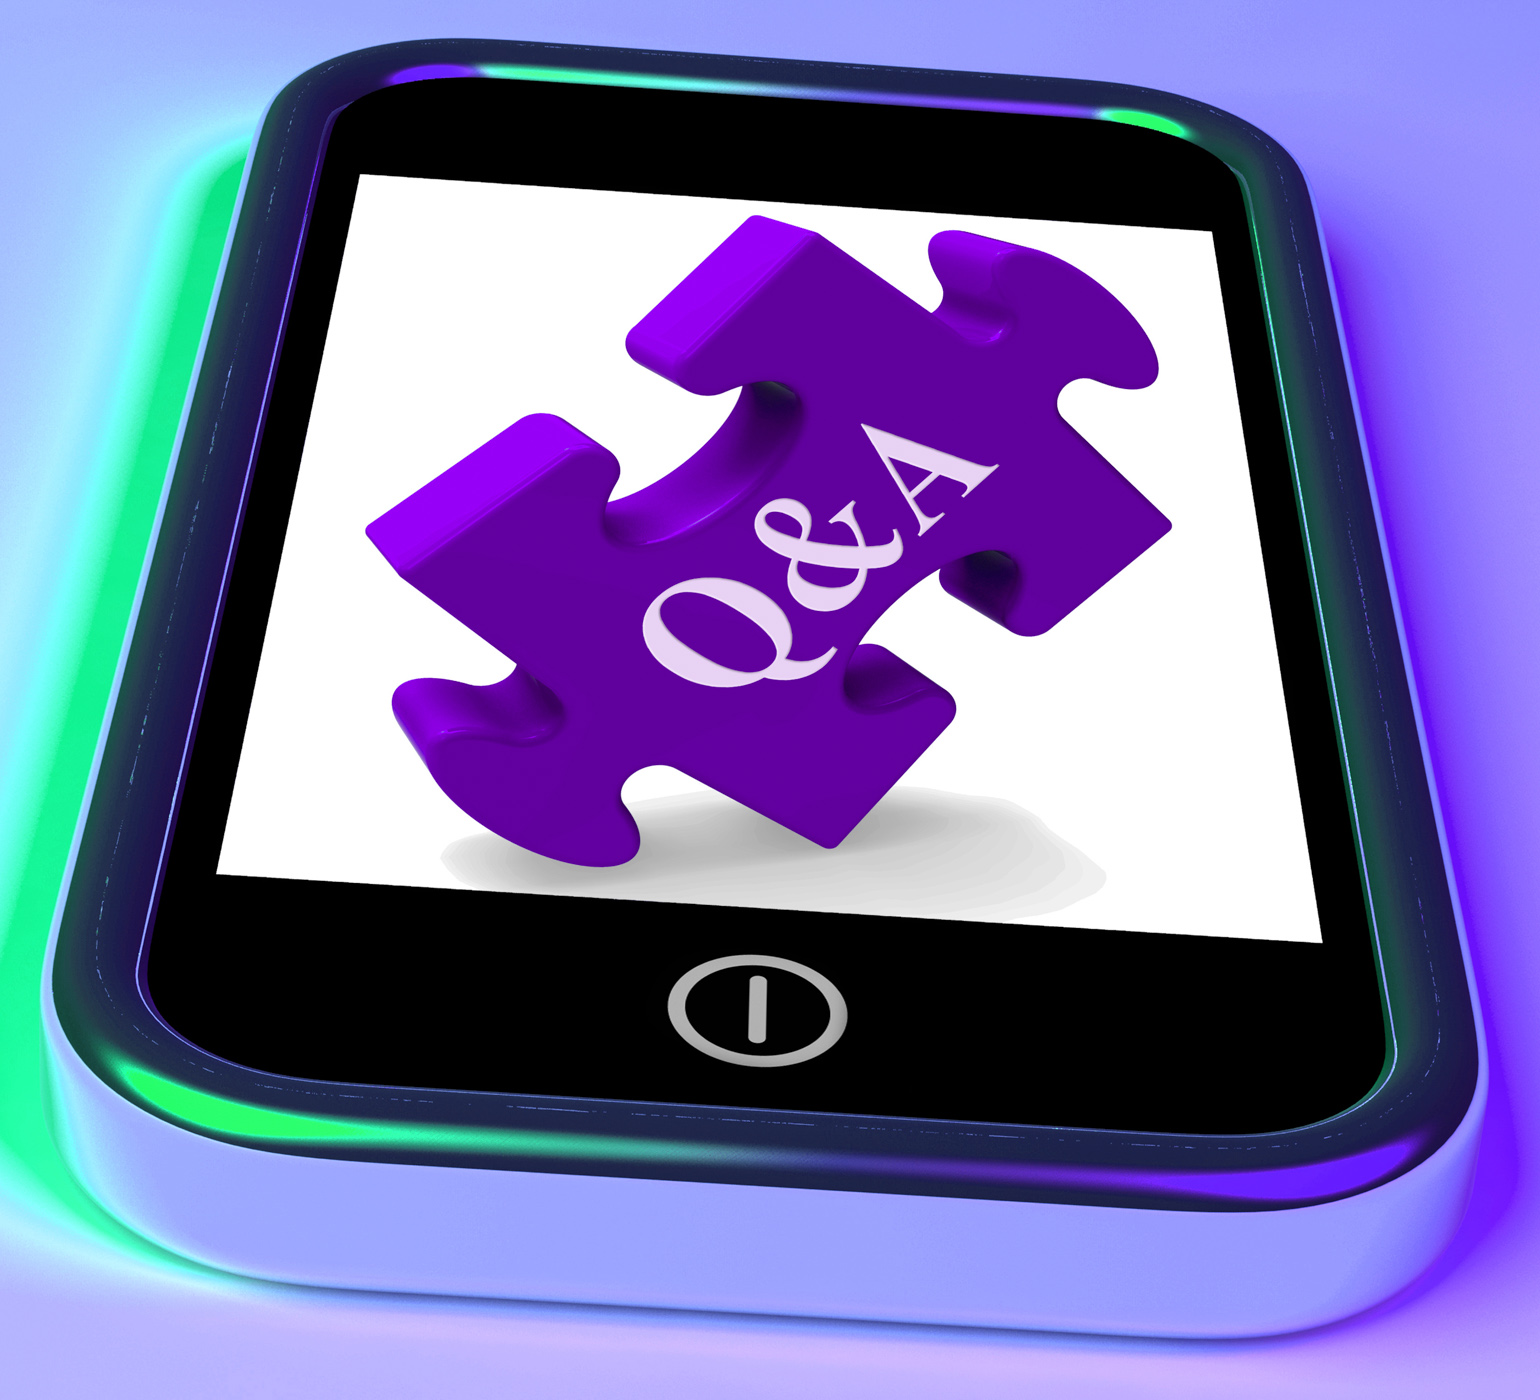 Qa puzzle on mobile phone shows questions and answers, Answer, Answers, Exam, Exams, HQ Photo